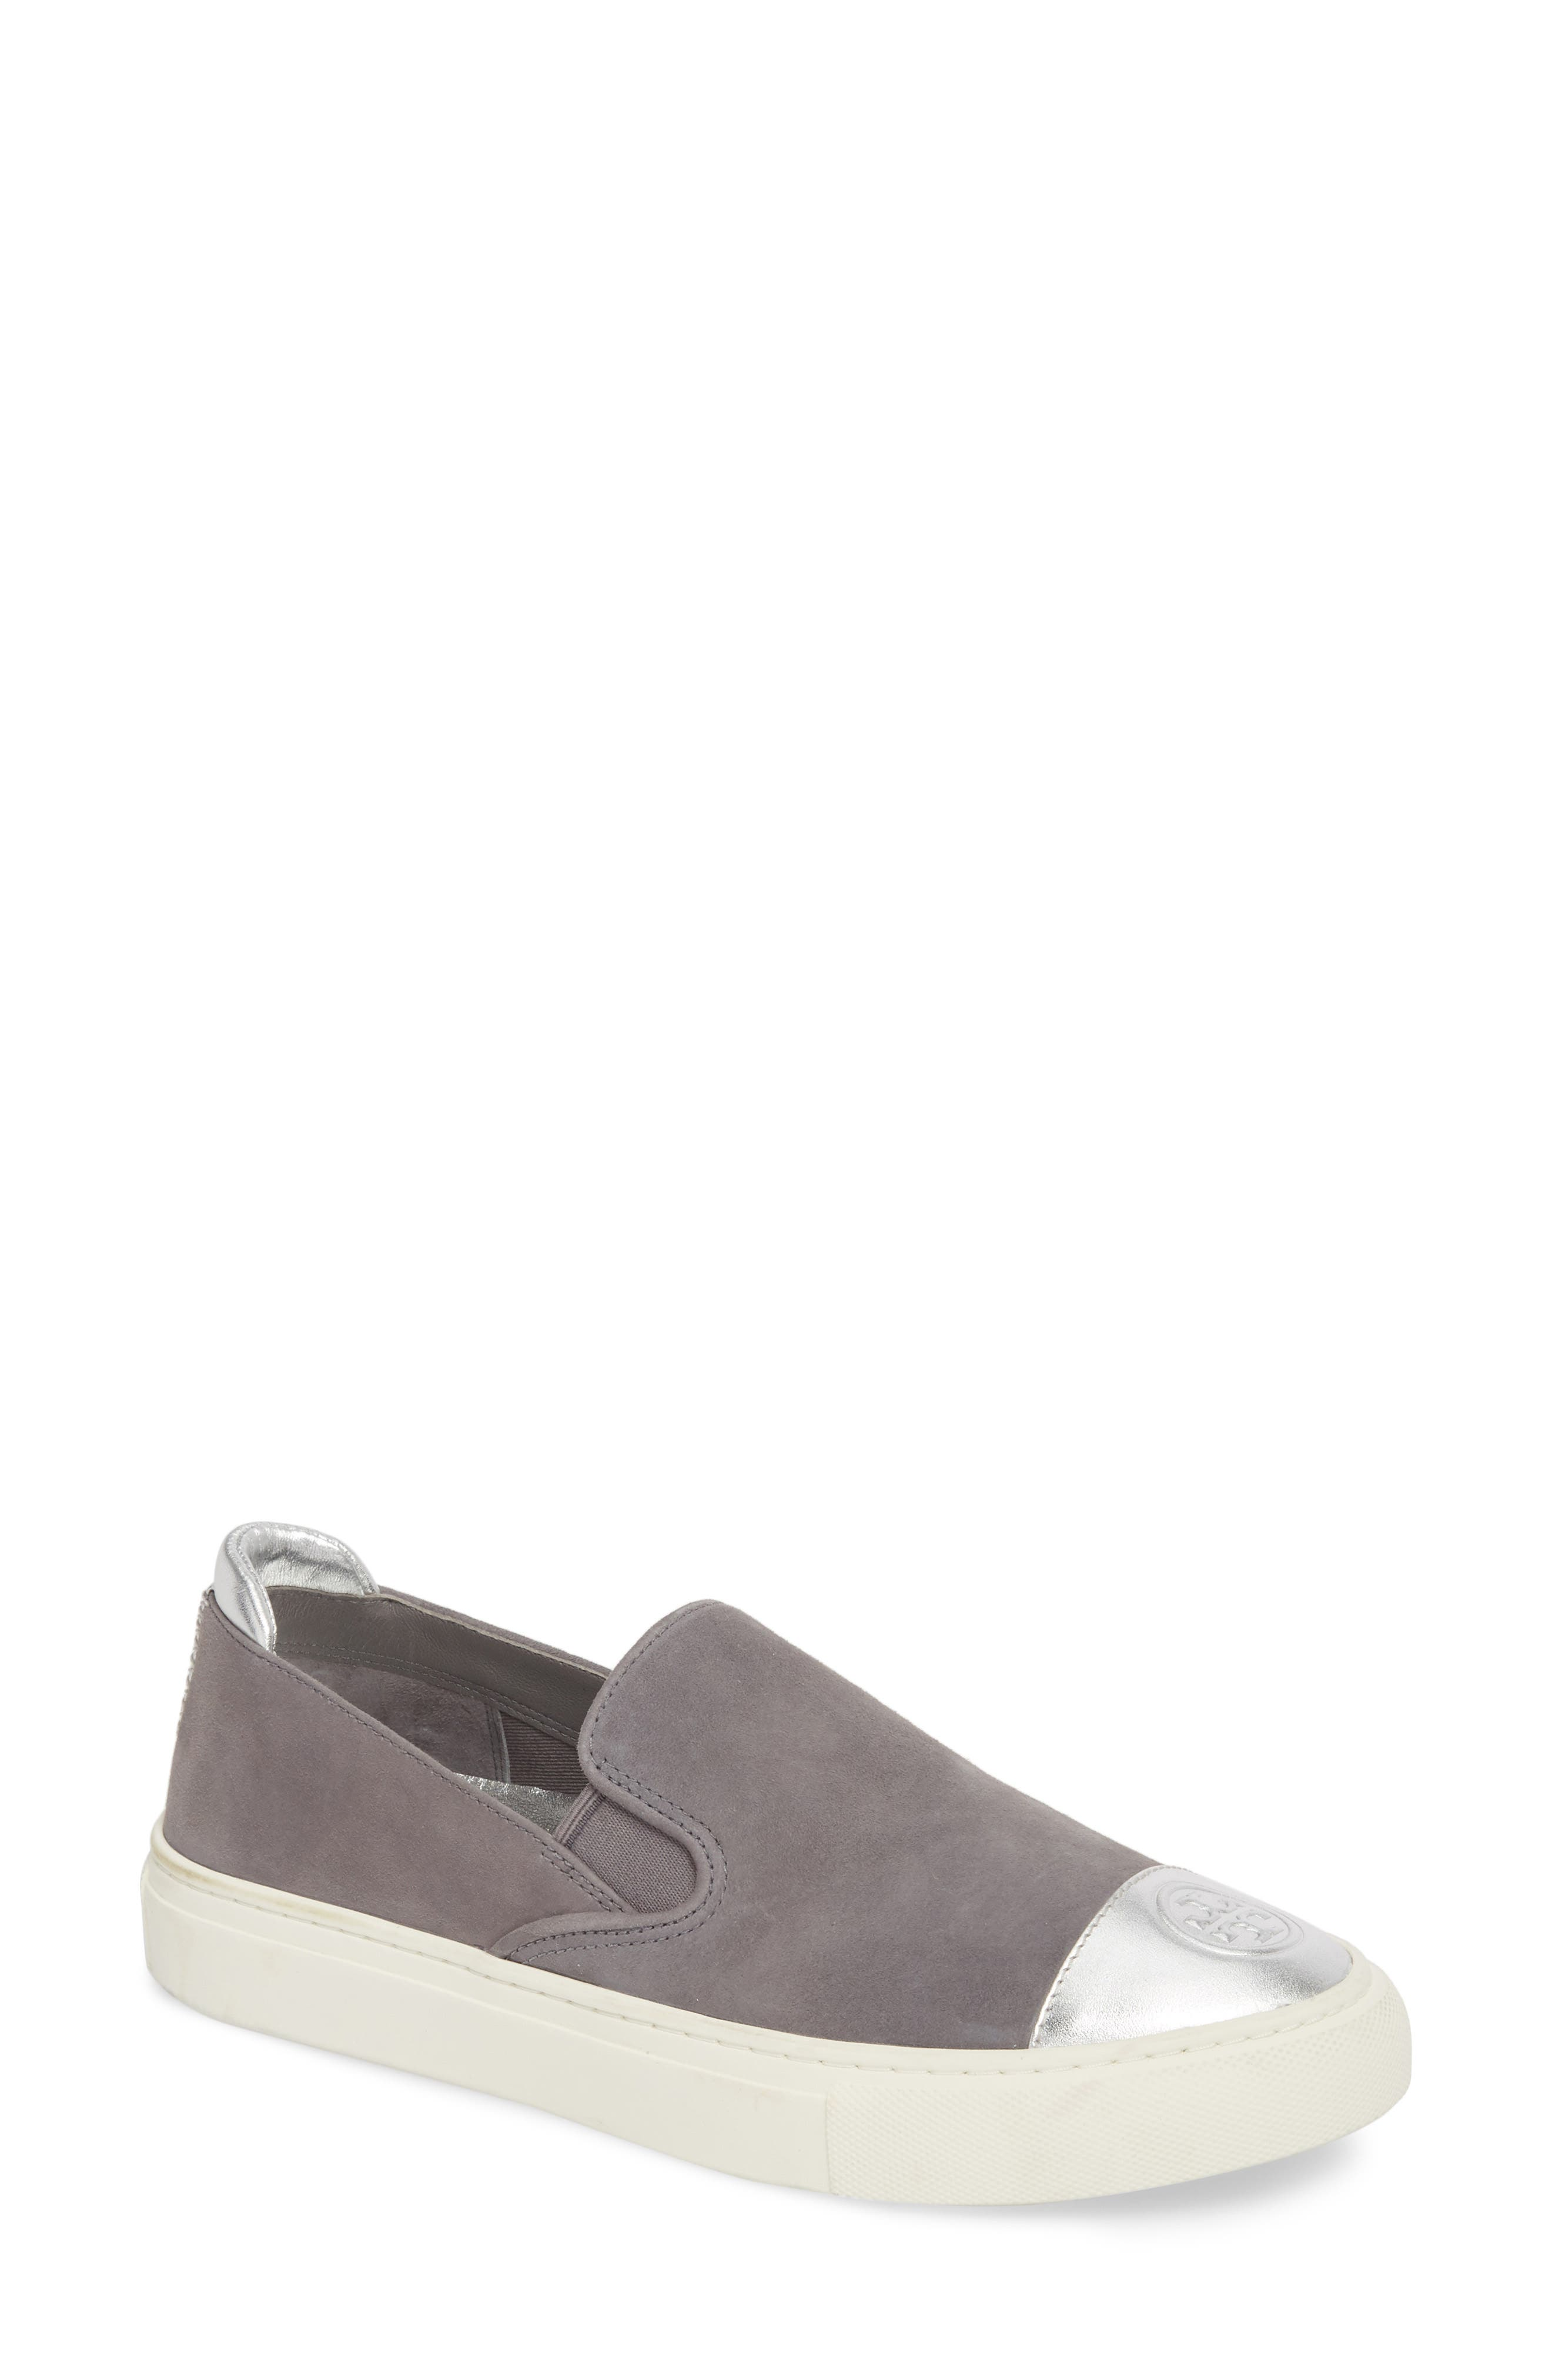 Tory Burch Colorblock Slip-On Sneaker (Women)